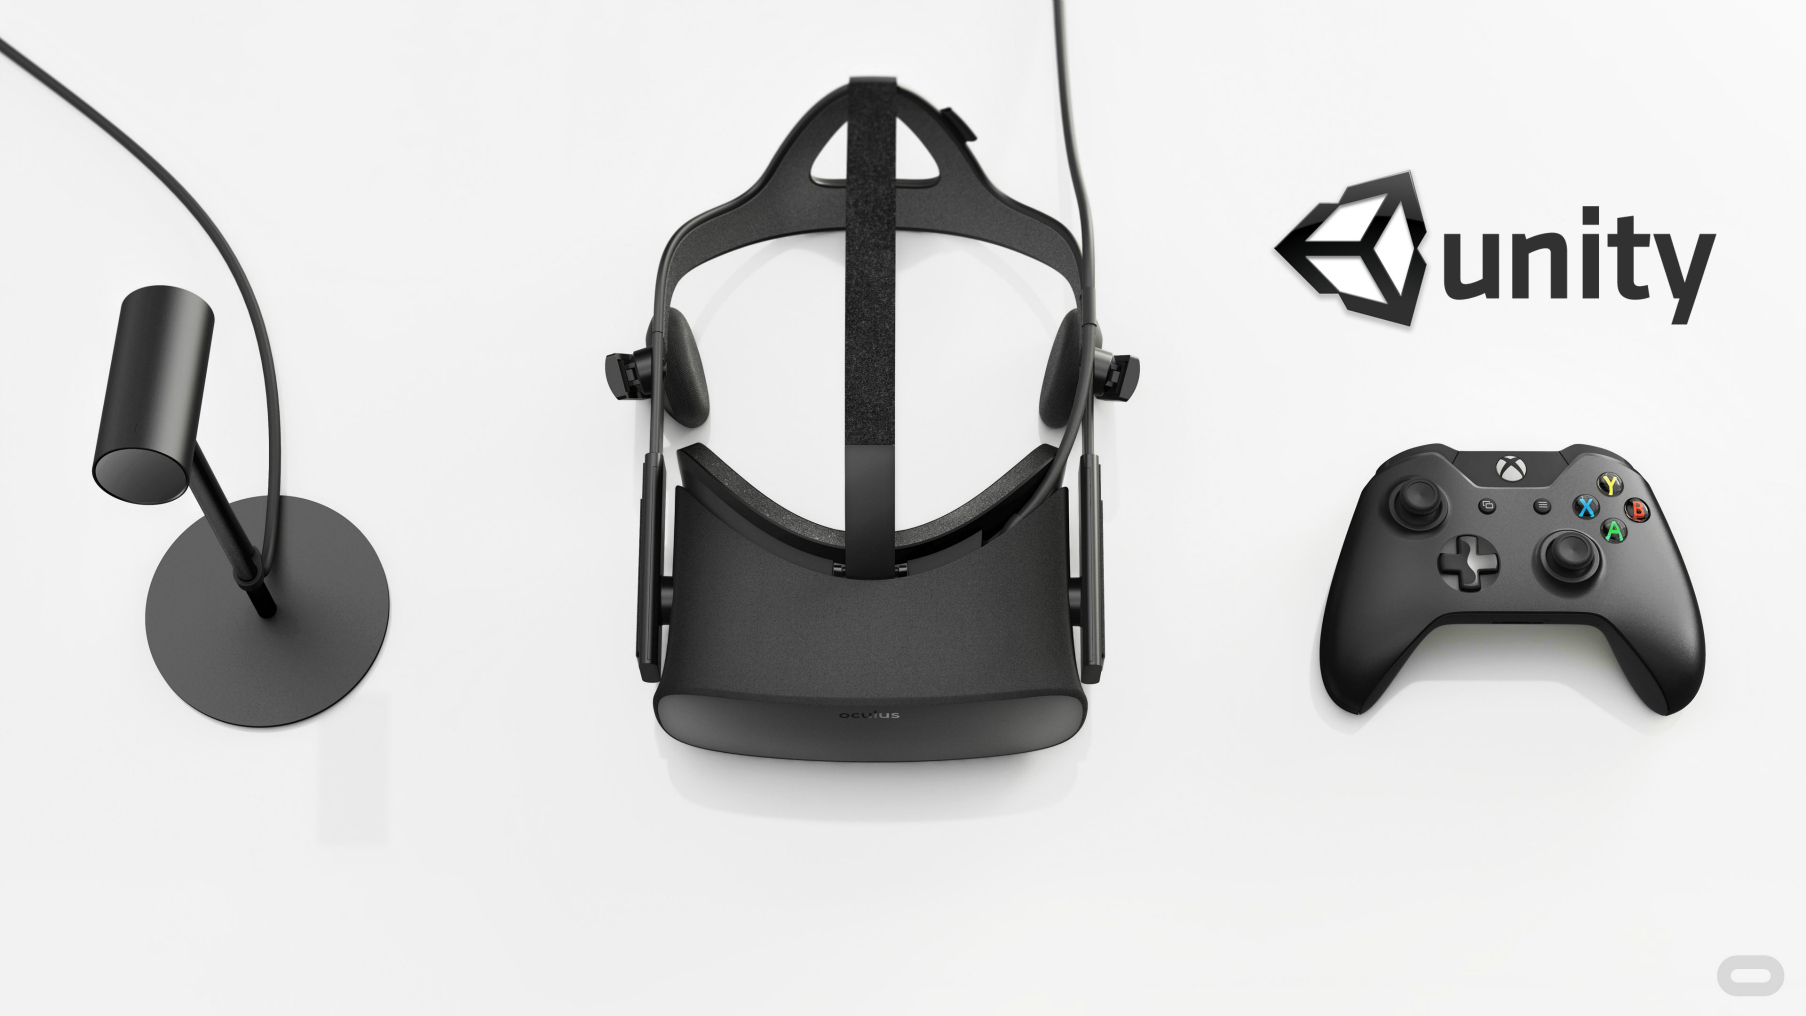 Consumer Oculus Rift to Arrive with 4-Month Free Trial of Unity Pro